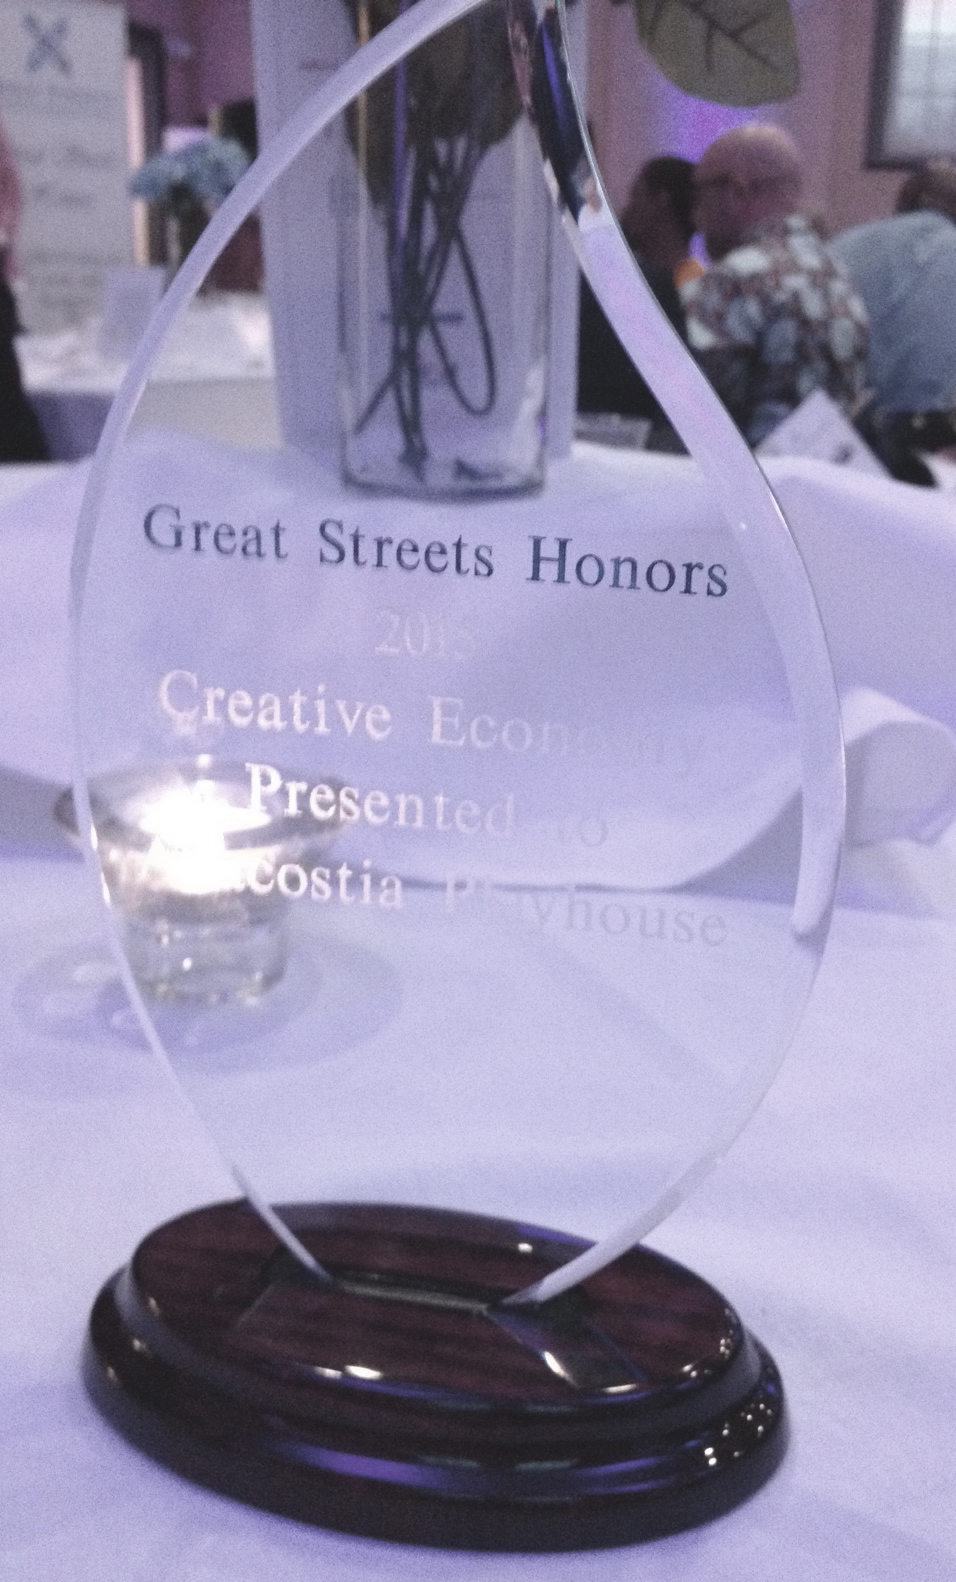 GreatSTreetAward